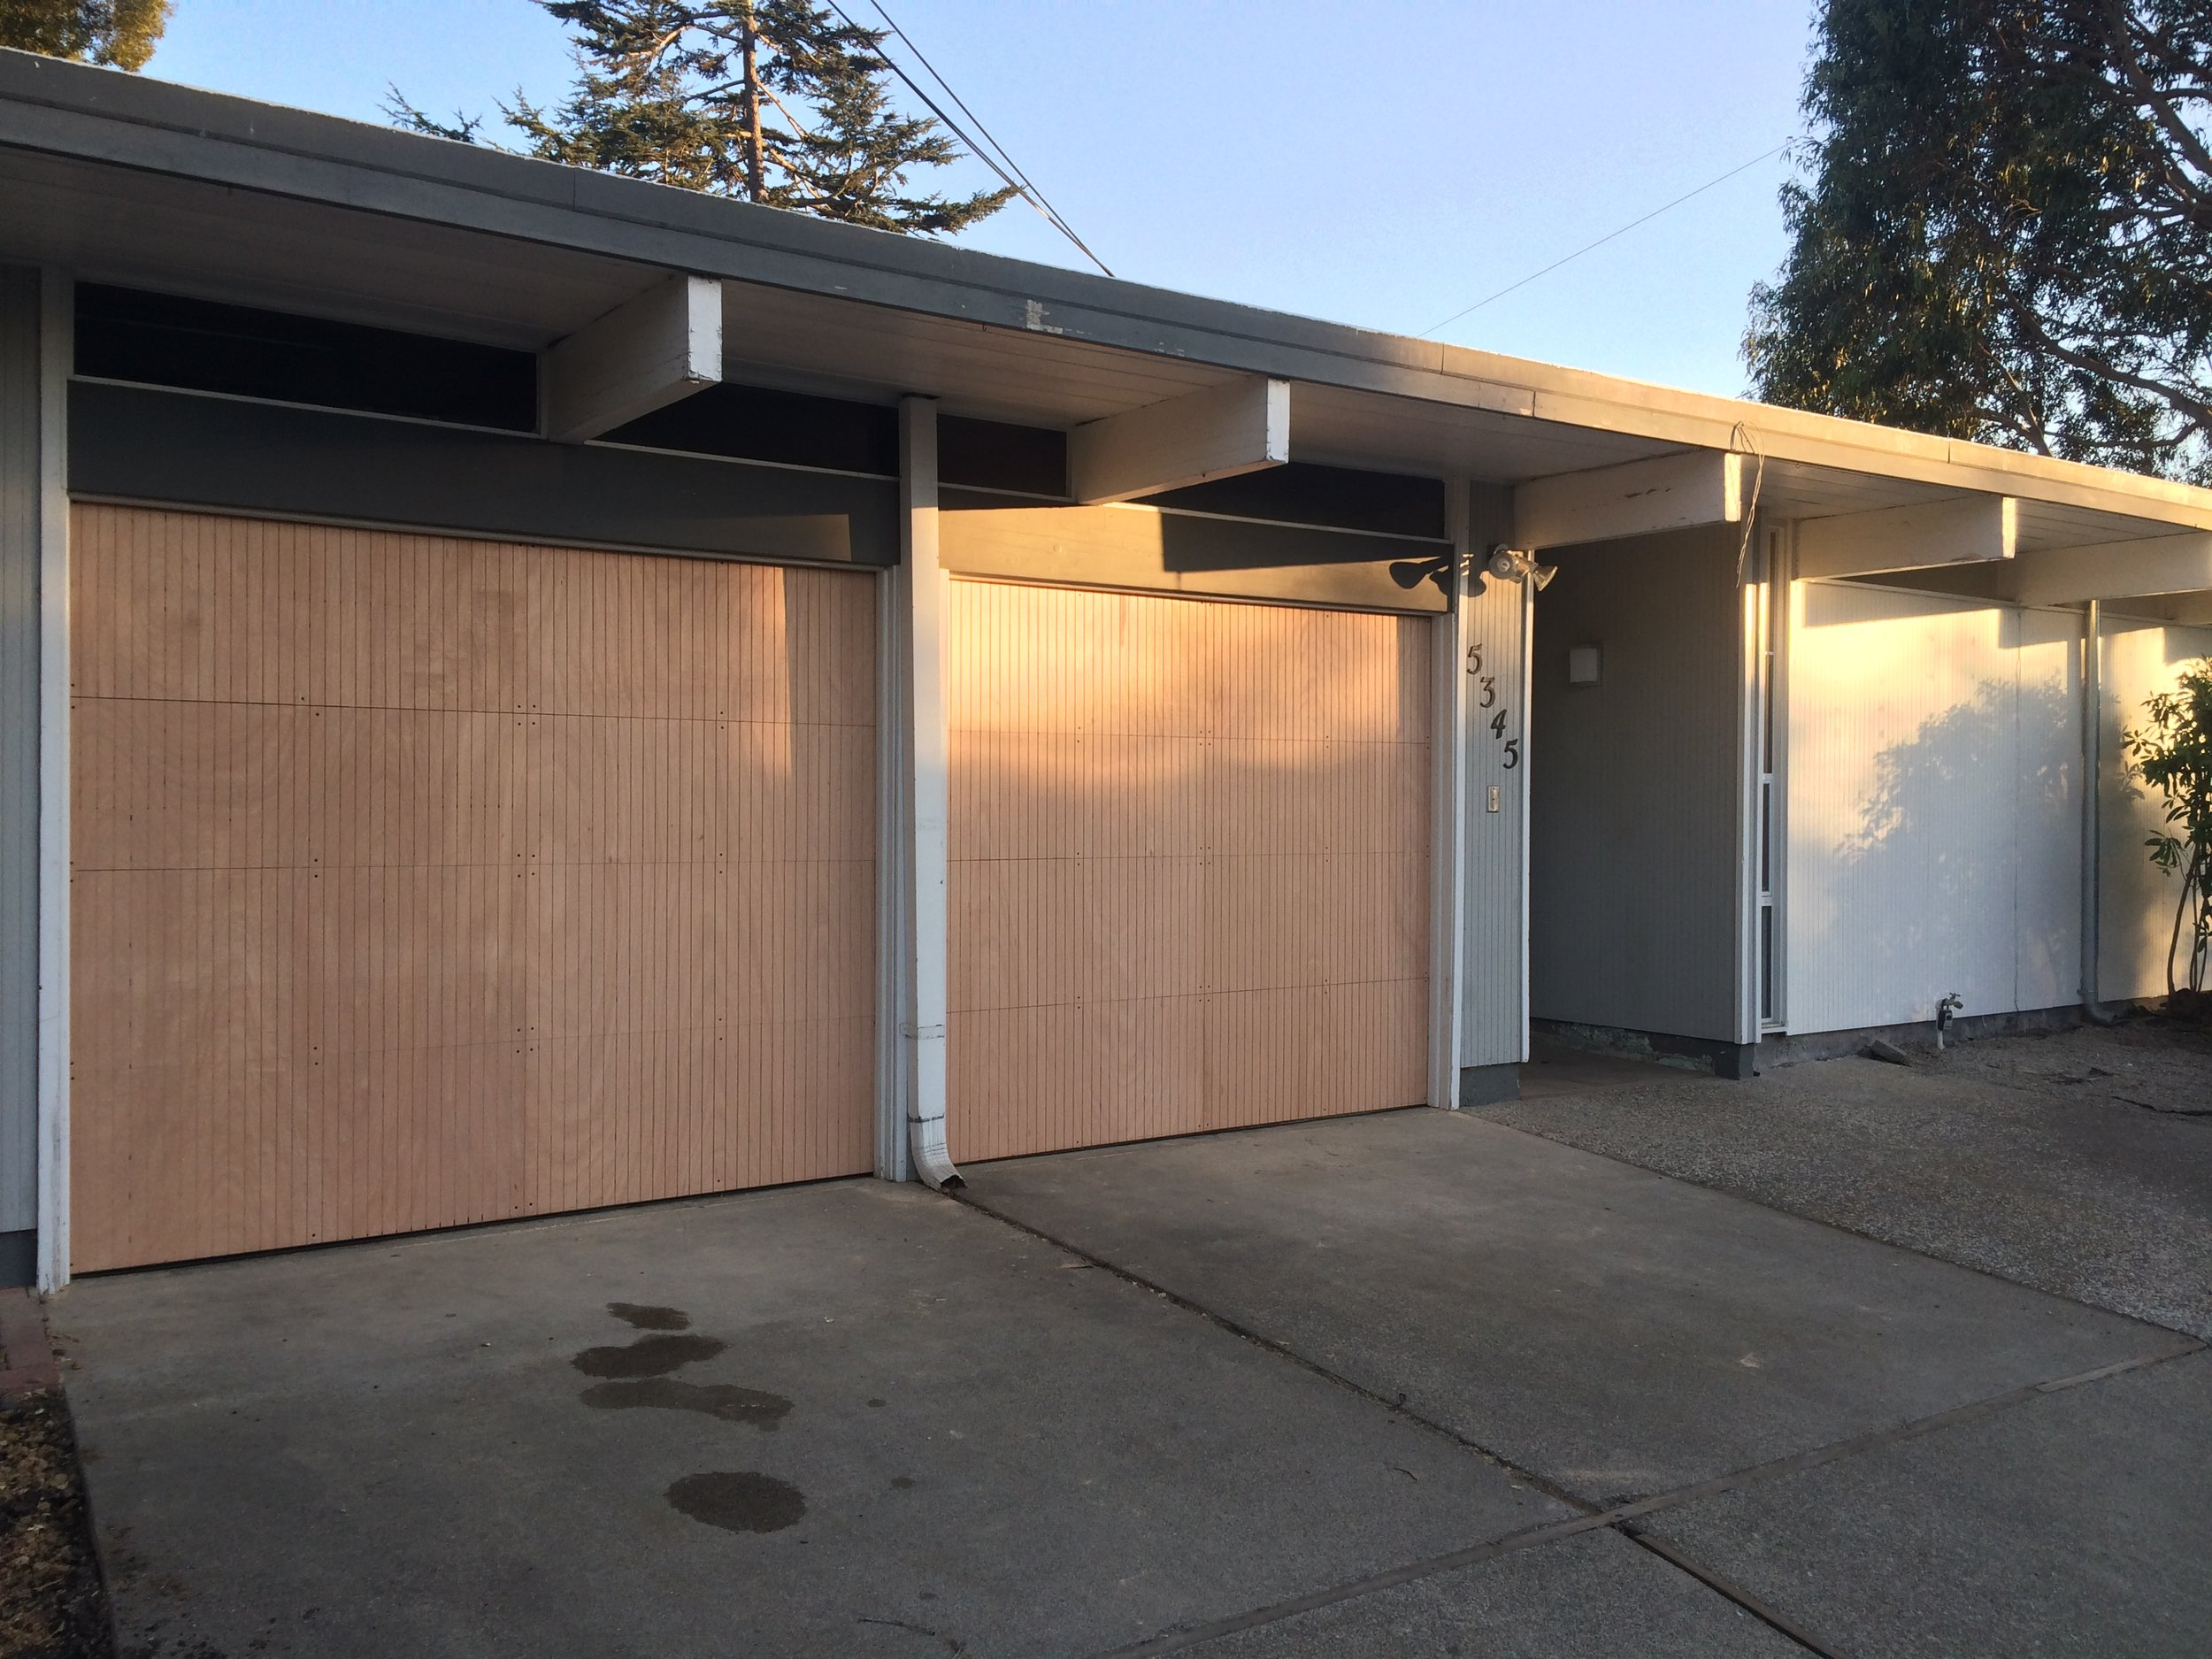 30 All Bay Garage Doors - Custom Built Kevin Doors - Kevin Chervatin - 1.JPG